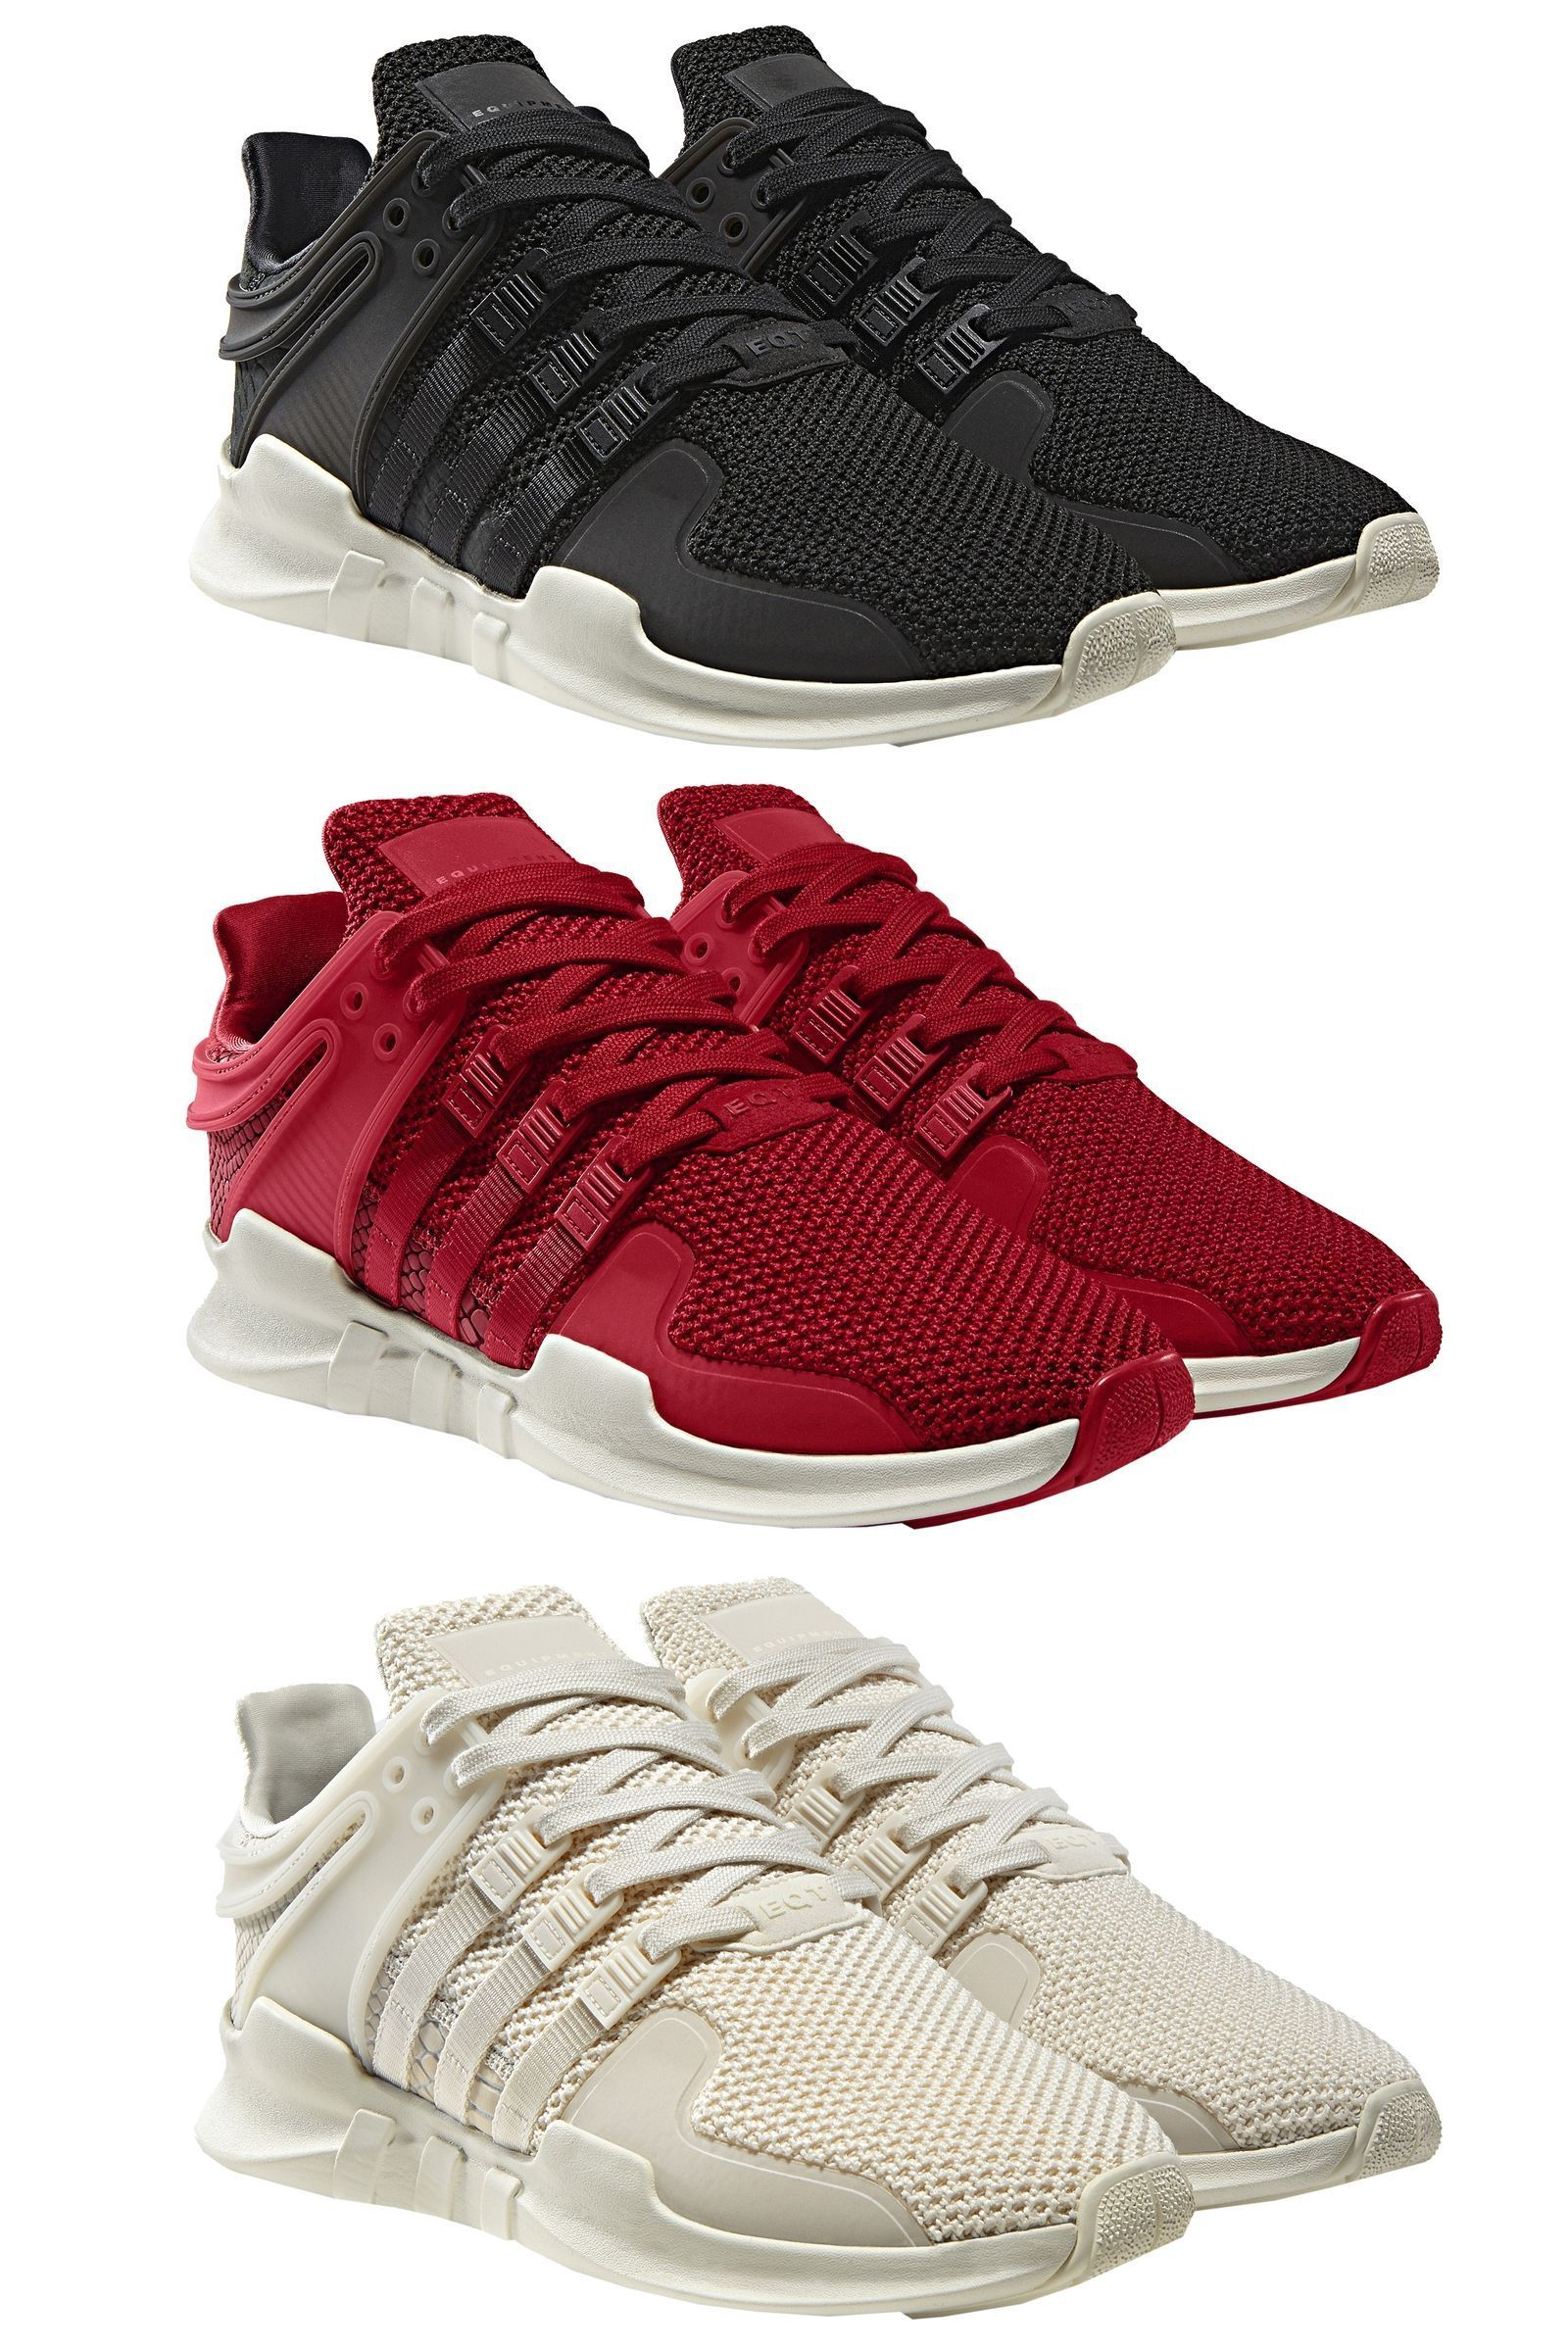 adidas EQT Support ADV Snakeskin Pack | SneakerFiles